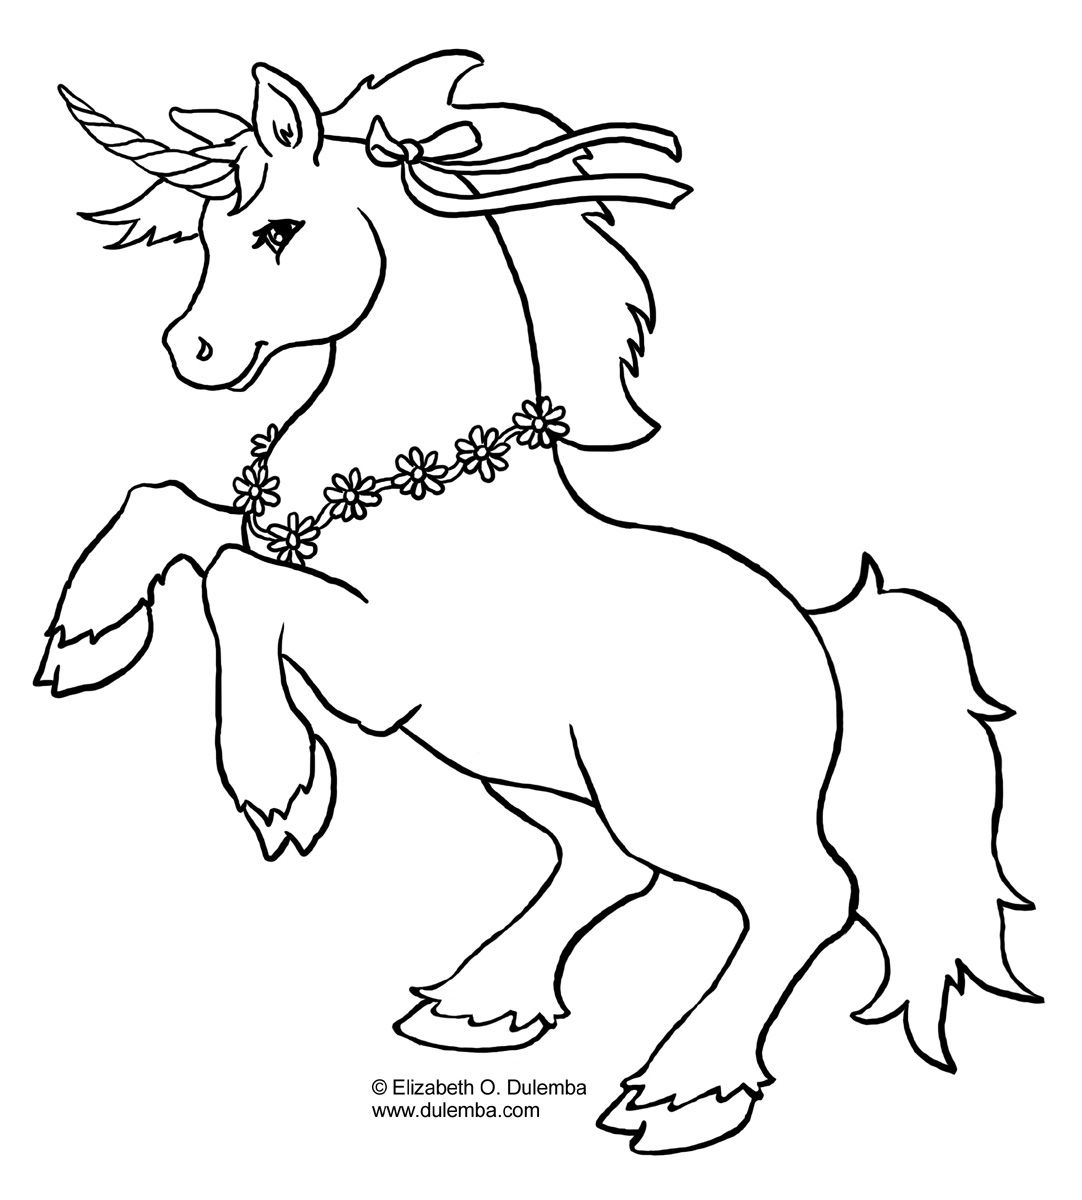 Coloring to print : Magical characters - Unicorn number 68211 ...